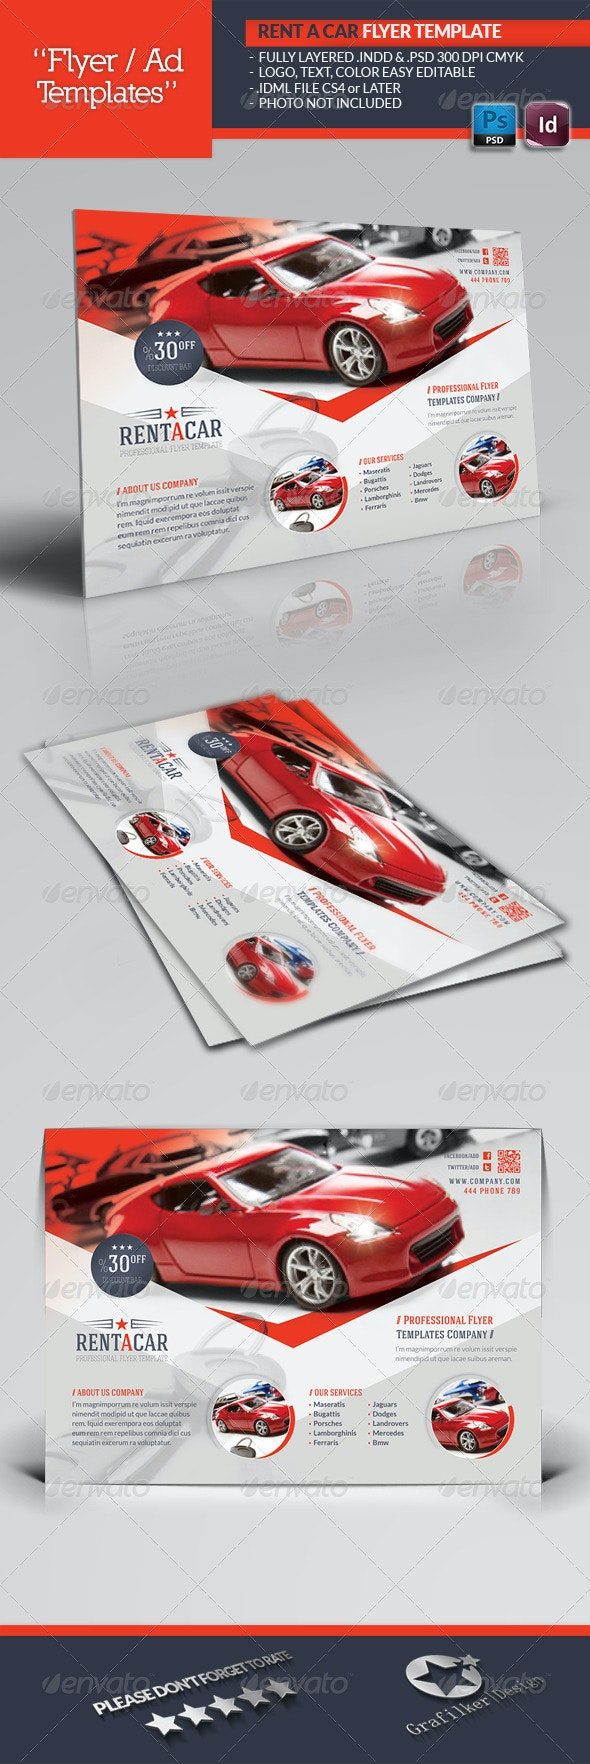 Rent A Car Flyer Template - Corporate Flyers